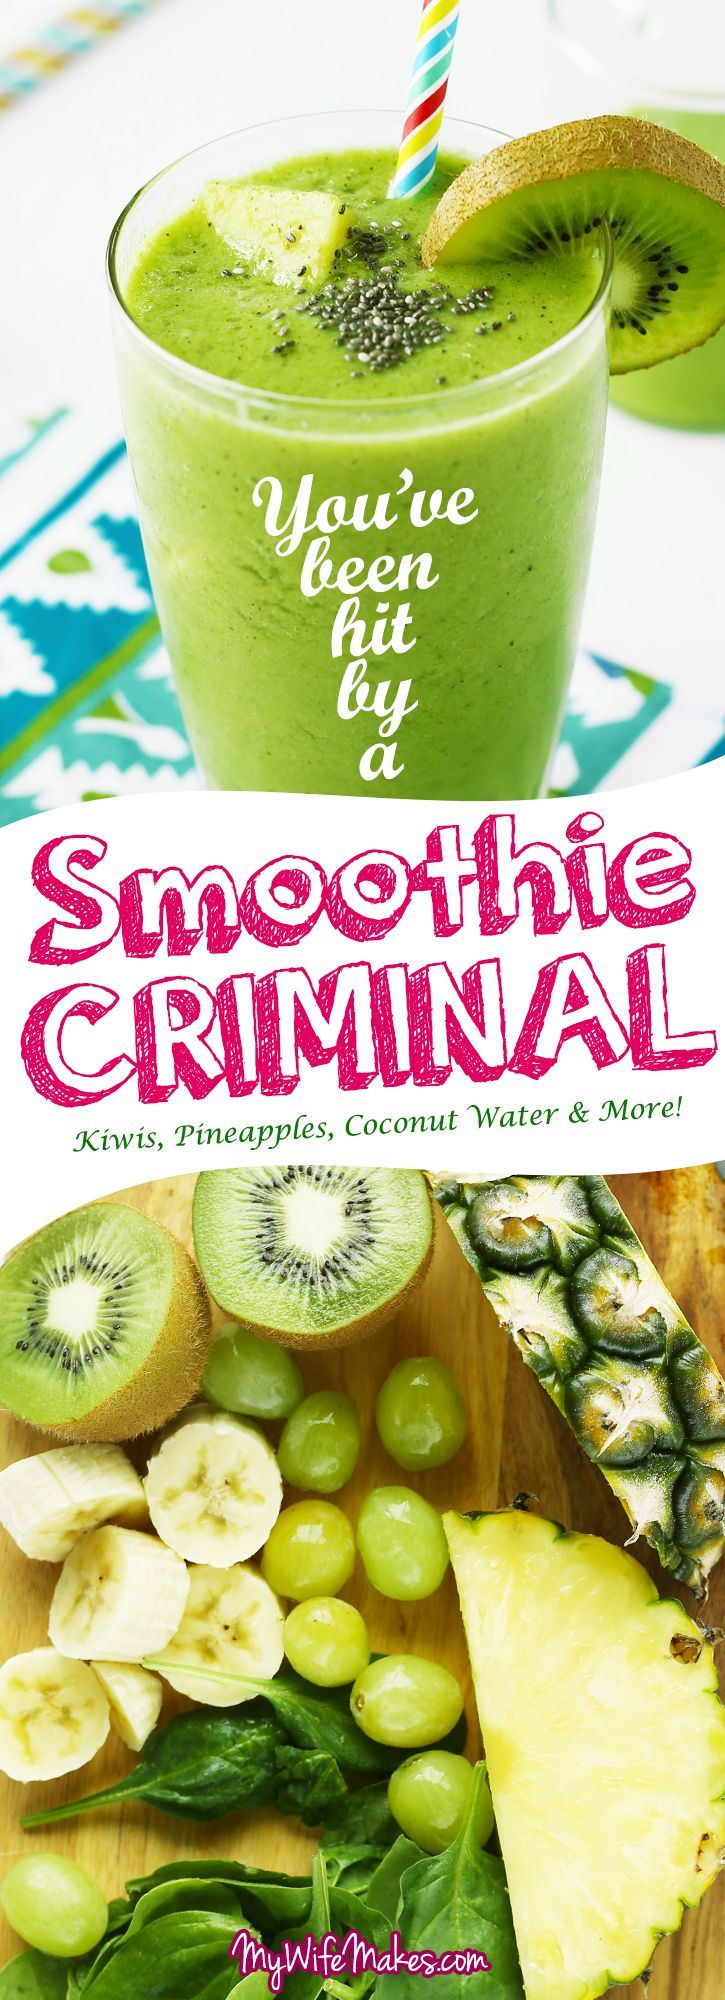 Simple Green Smoothie - Delicious, healthy, vegan smoothie thats perfect for breakfast. Full of pineapple, kiwi, spinach, grapes, banana and coconut water. #breakfast #vegan #greensmoothie #recipe #veganrecipe #healthy